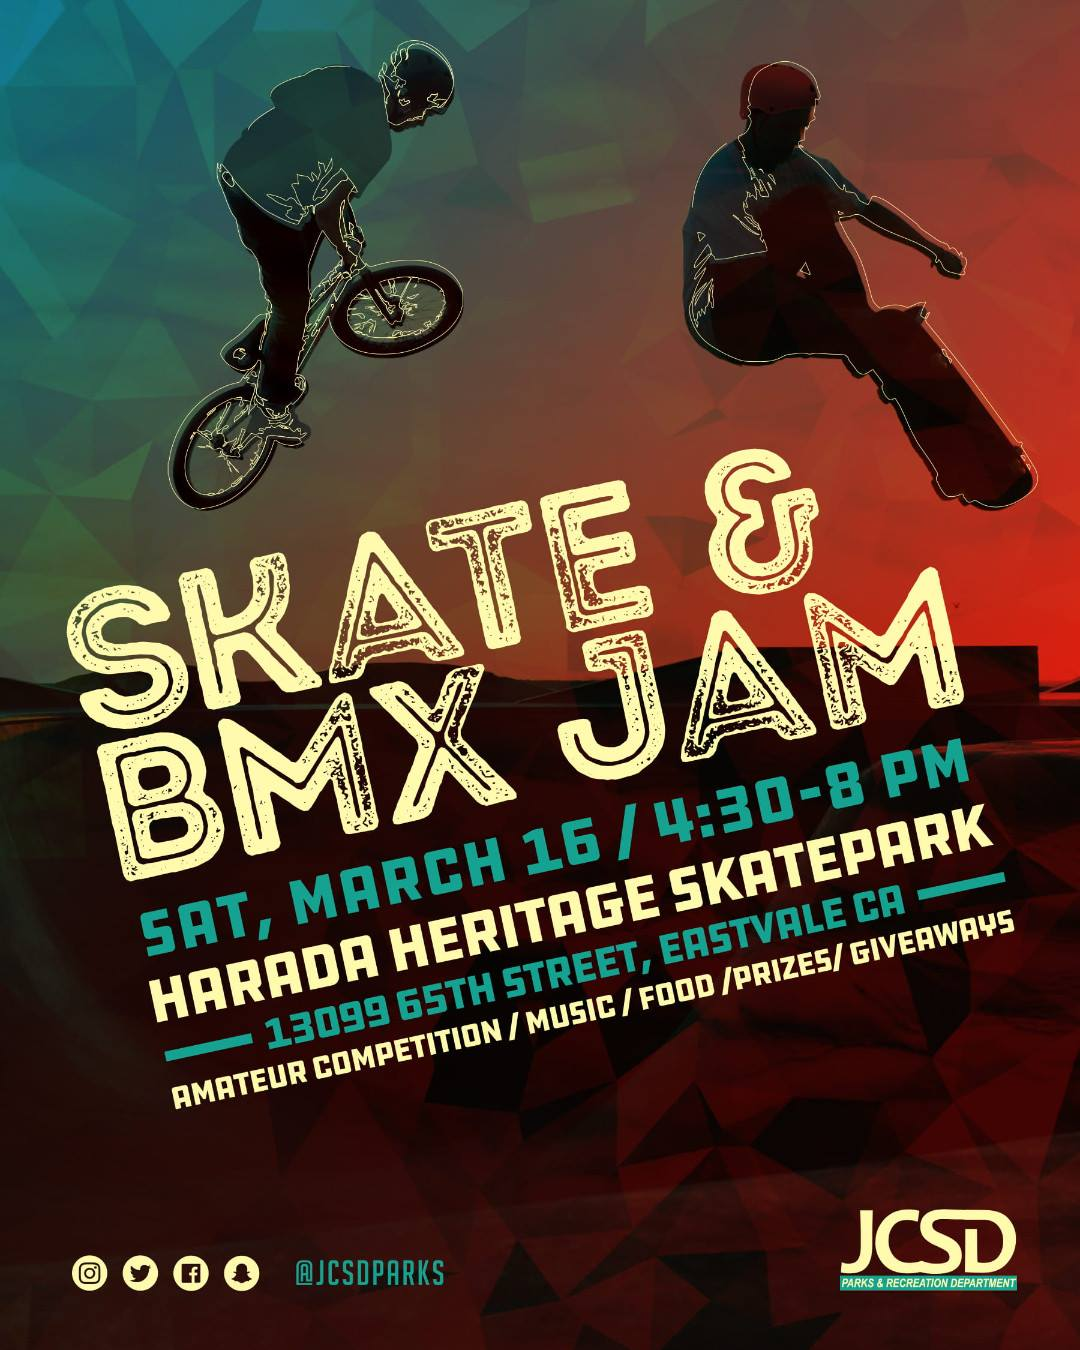 Herada Skatepark Jam Saturday the 16th 2019